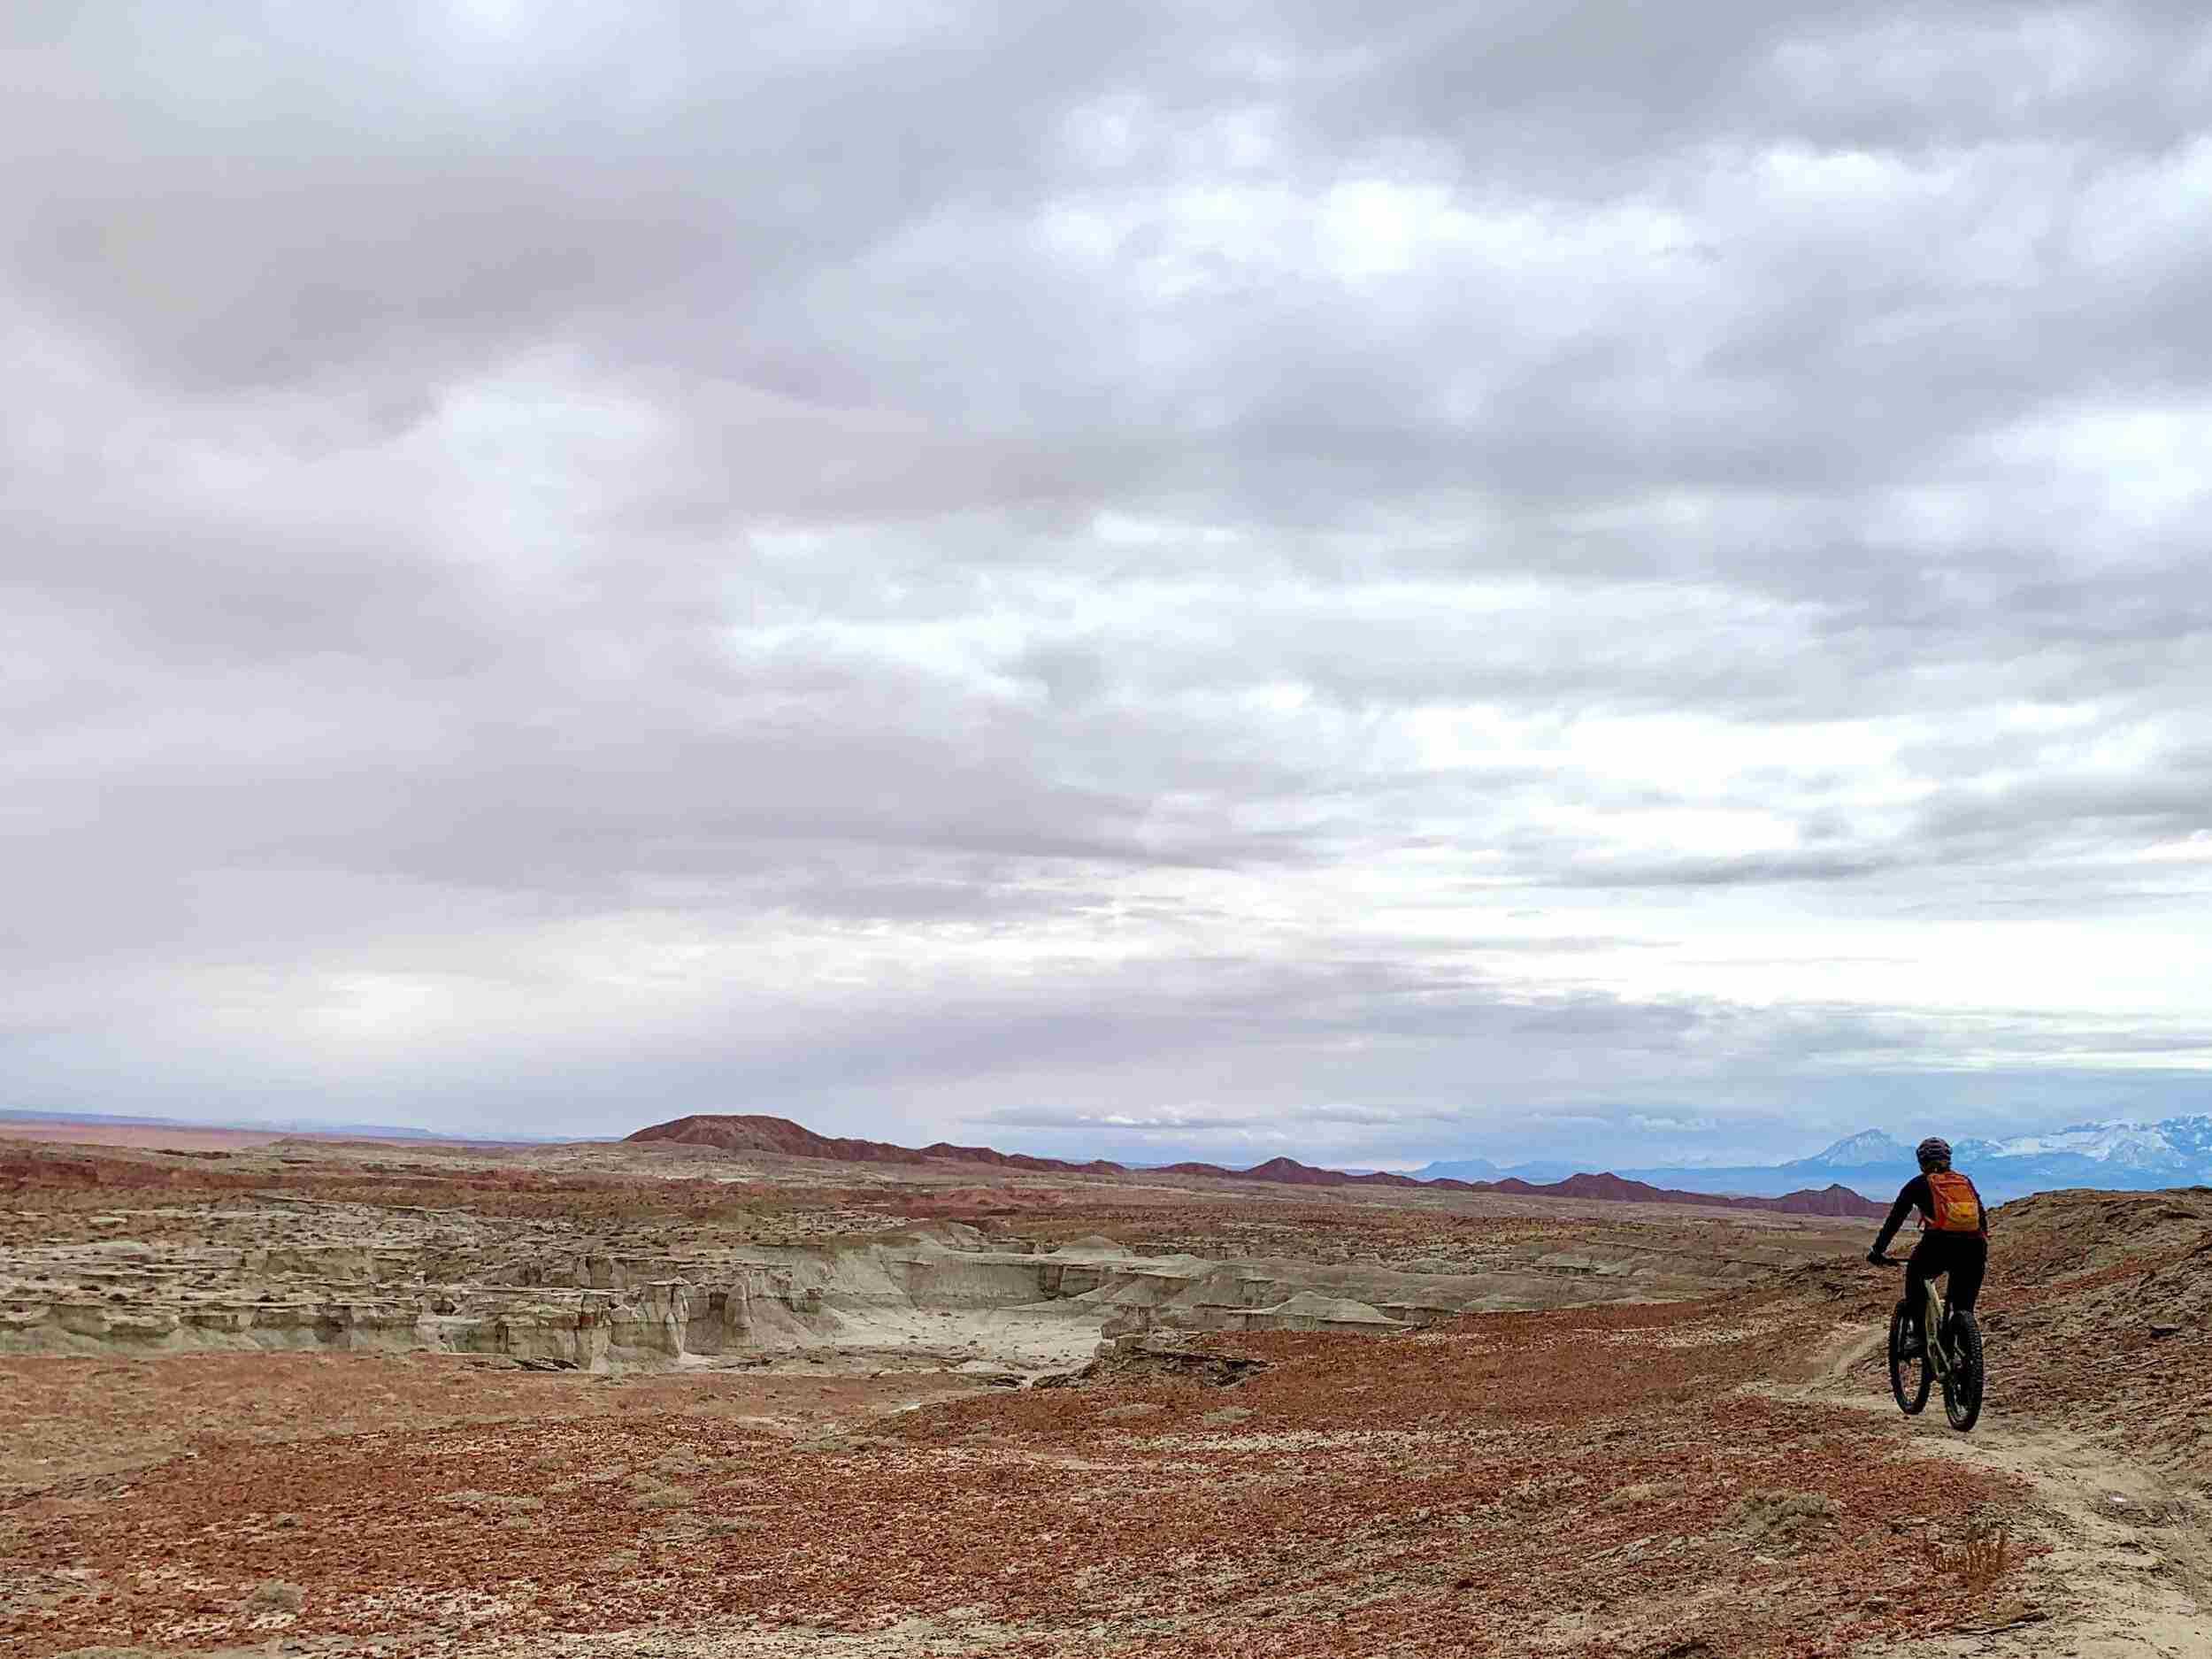 Learn all about Goblin Valley mountain biking here including best time of year to visit, which loops to choose, what to expect, and more!